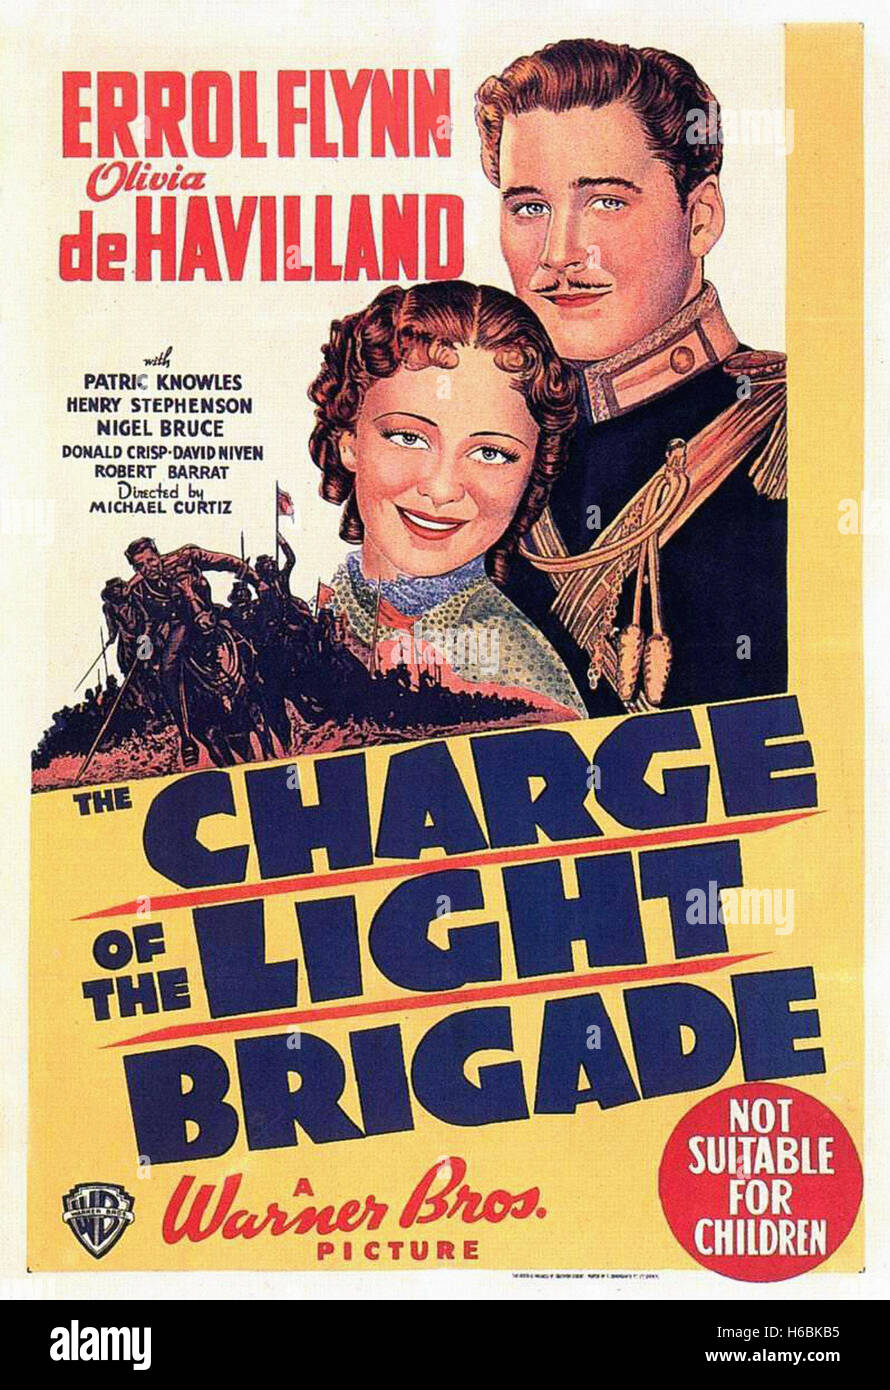 The Charge of the Light Brigade (1936)  - Movie Poster - - Stock Image